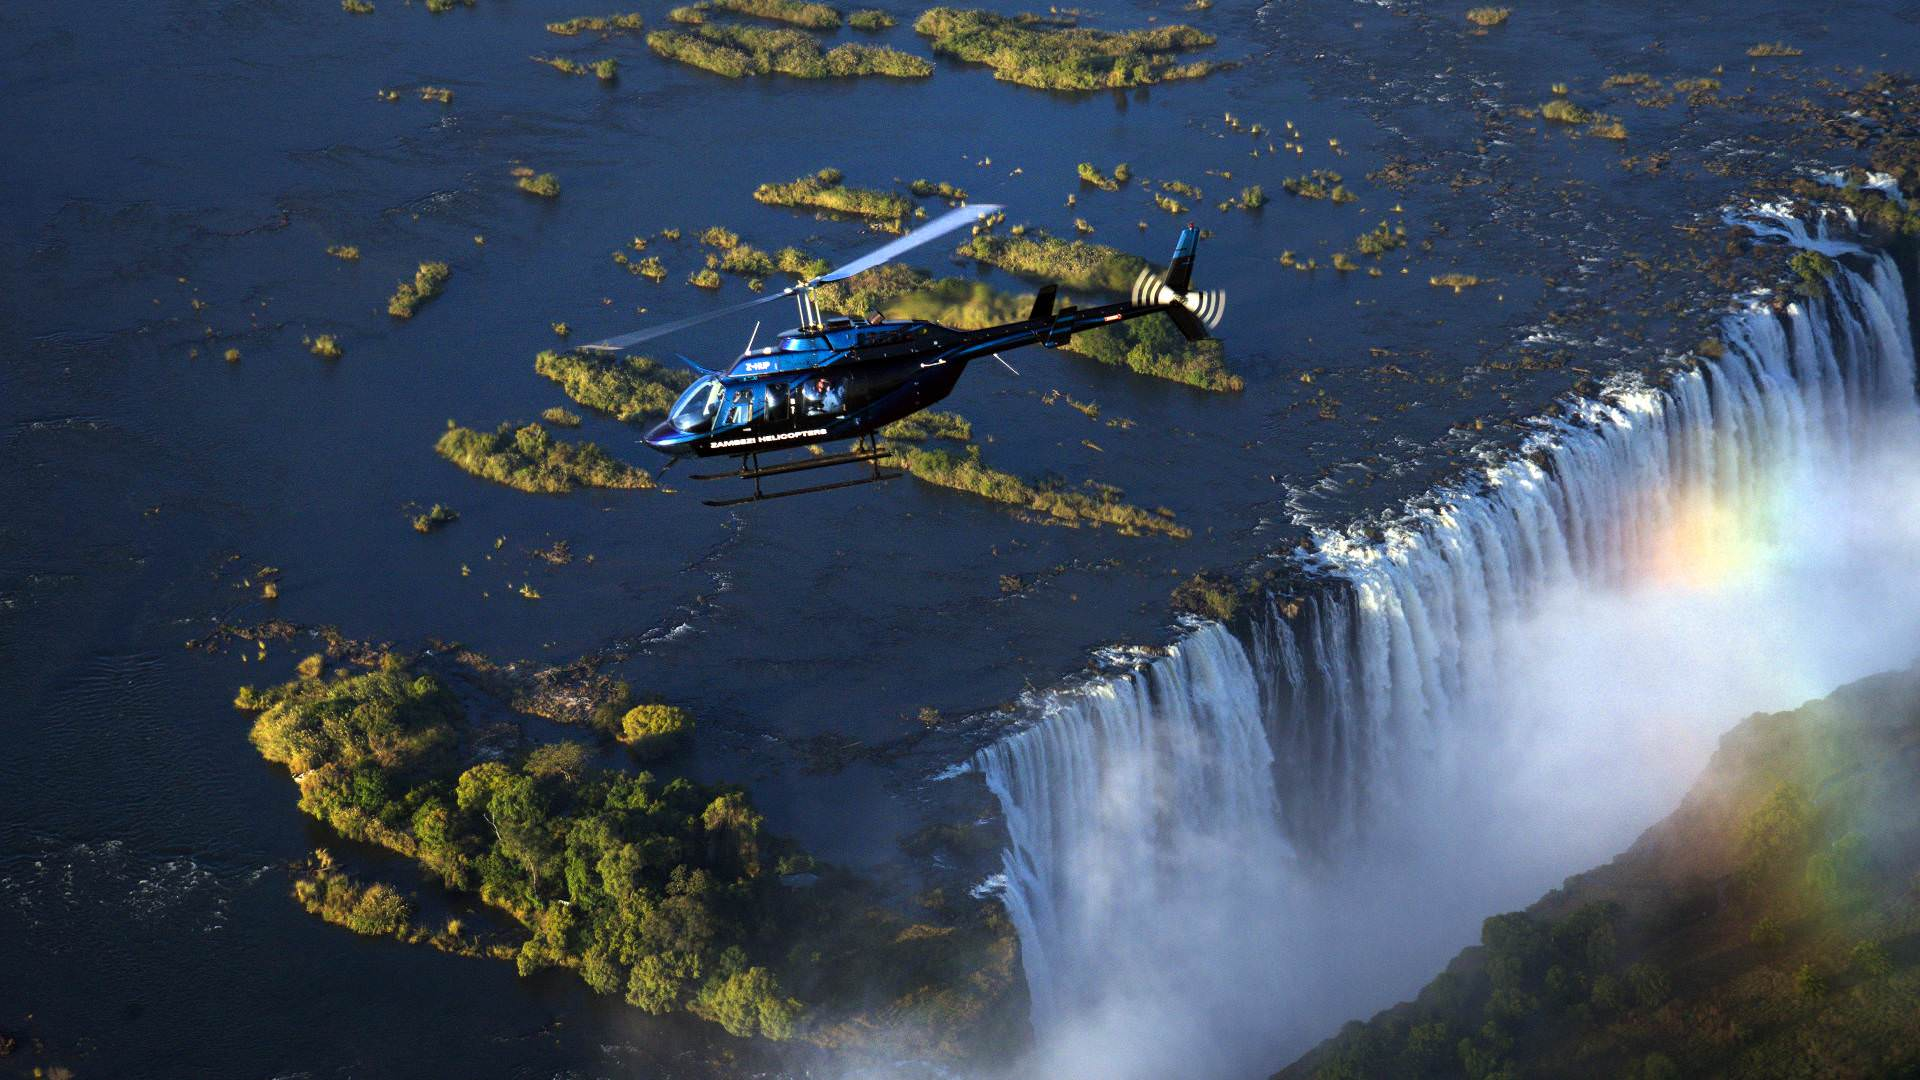 Wild Horizons helicopter over the falls